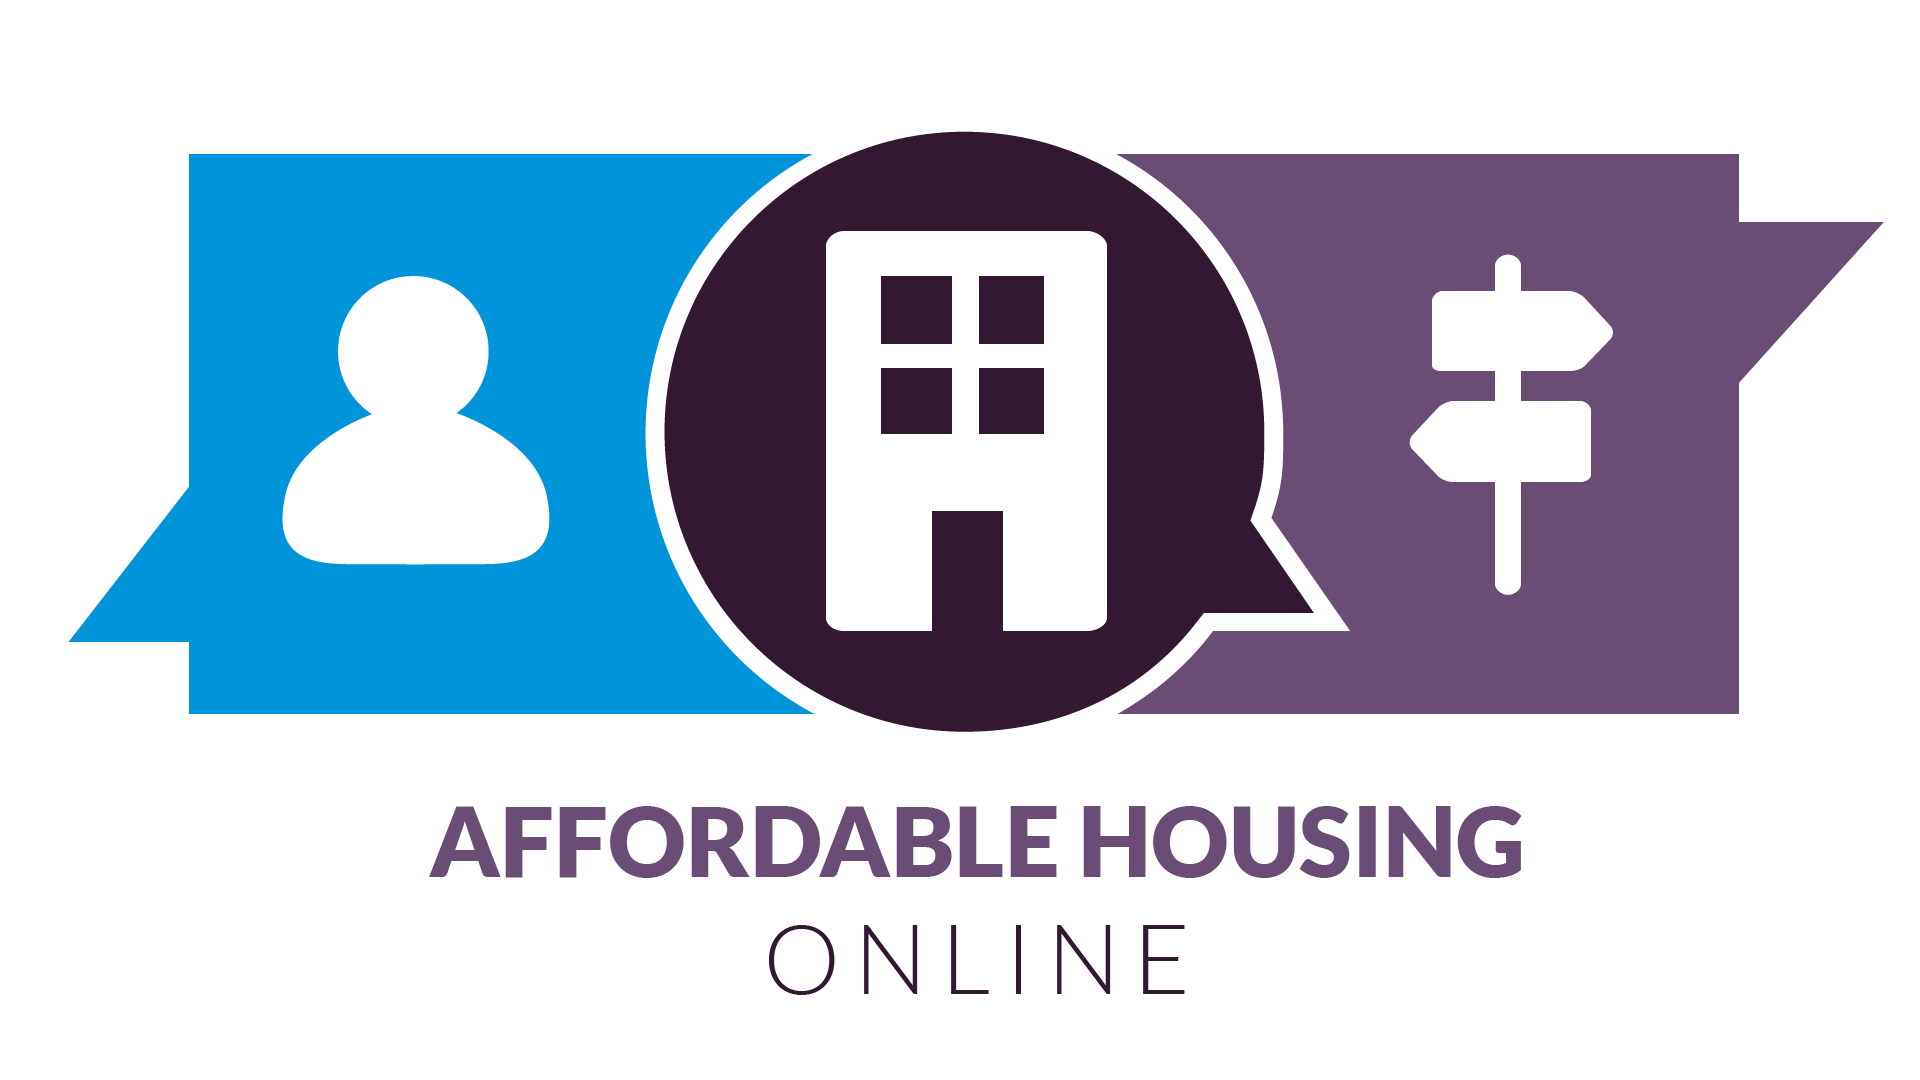 25 Low Income Housing Apartment Complexes Which Contain 2 293 Subsidized Apartments For Rent In Cle Low Income Apartments Low Income Housing Affordable Housing